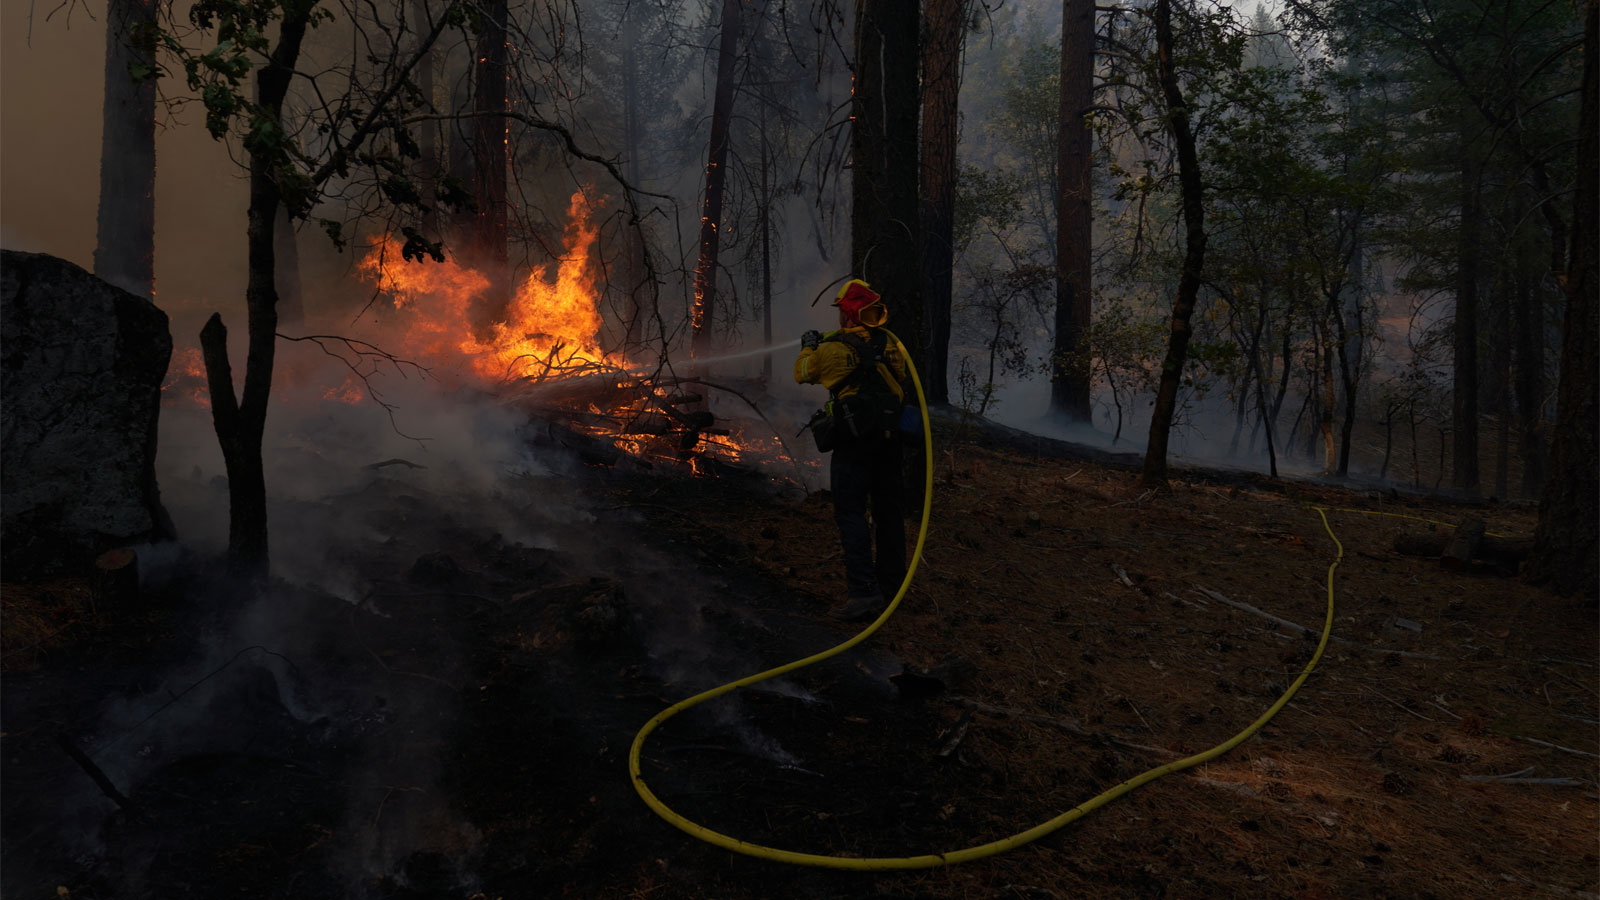 A firefighter spraying water on flames in a forest